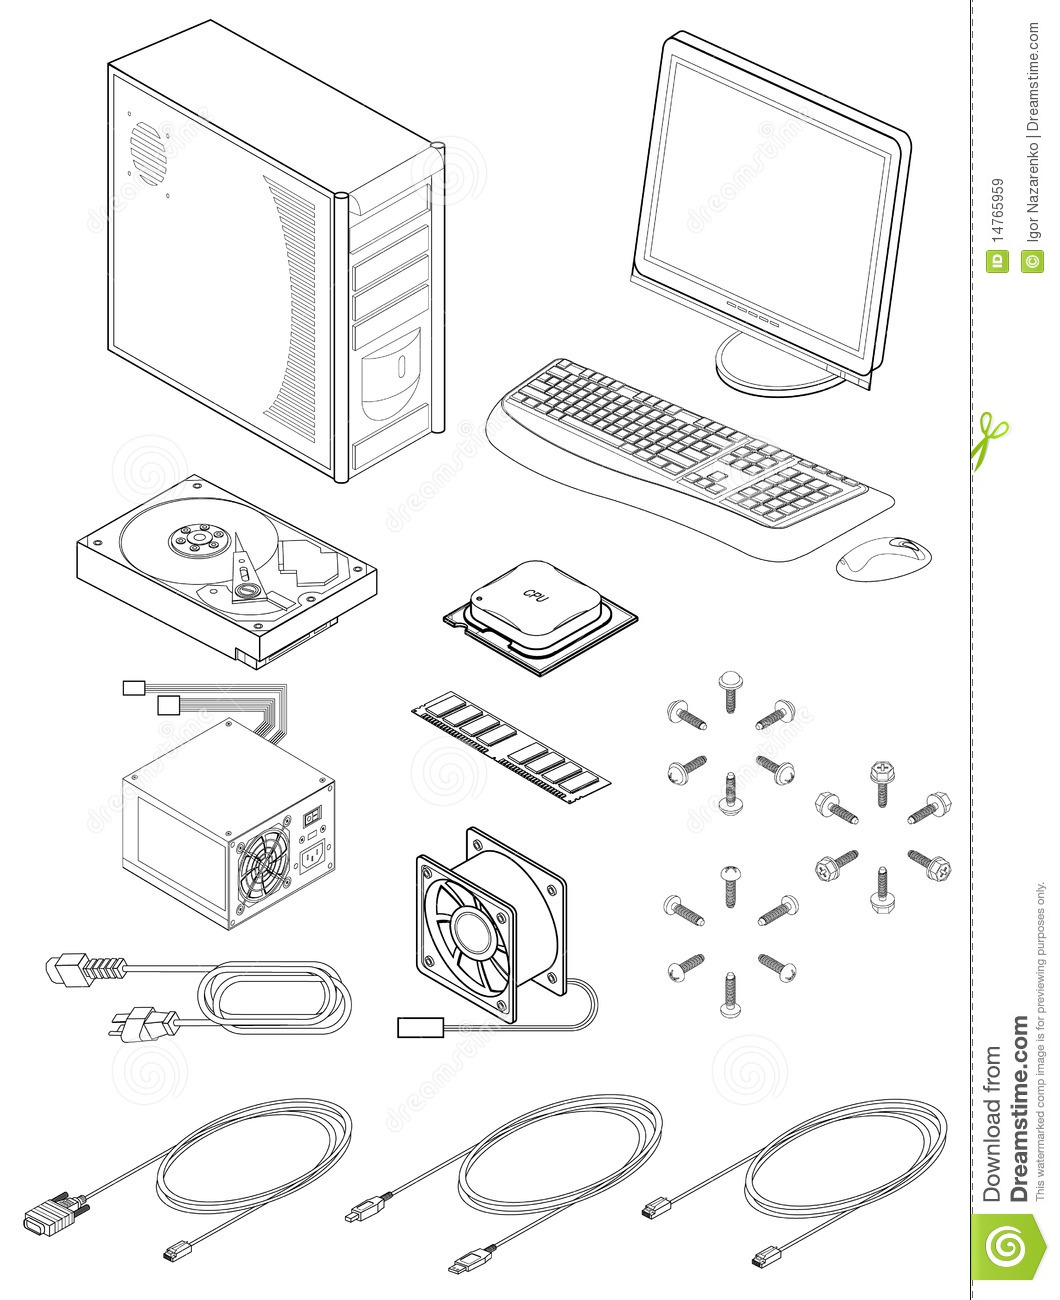 Computer Parts And Accessories Royalty Free Stock Images